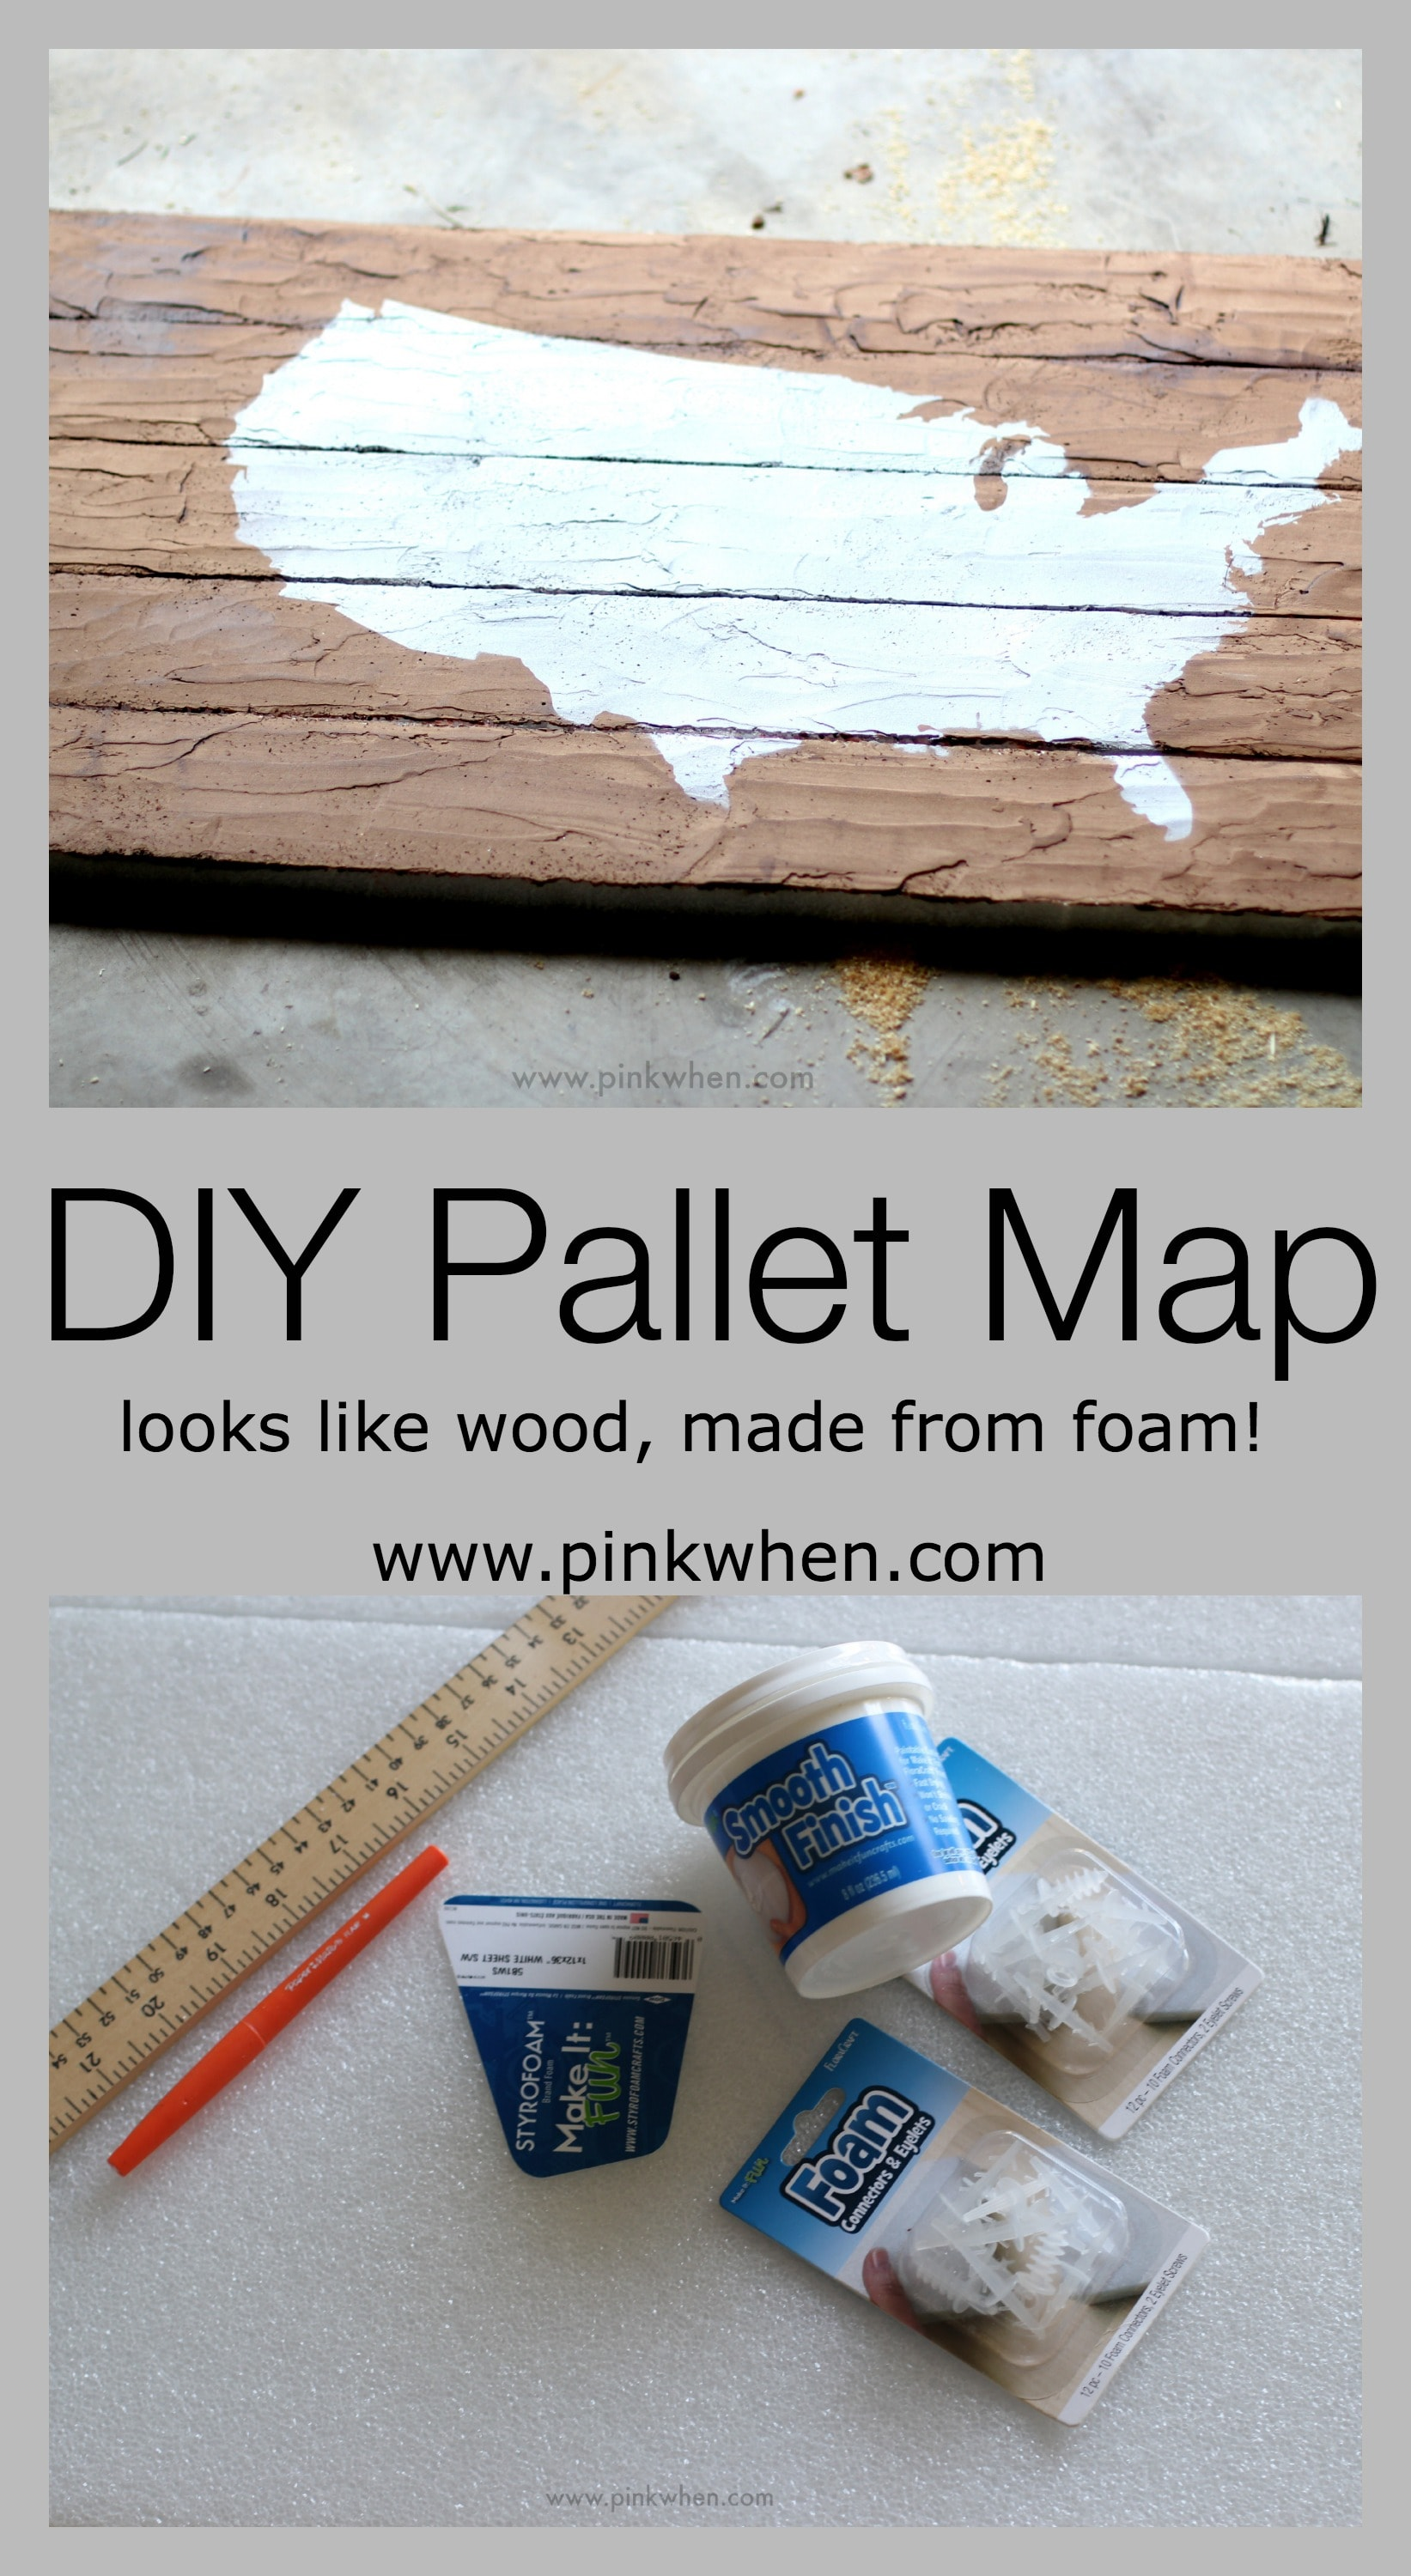 Diy faux wood pallet map art page of pinkwhen